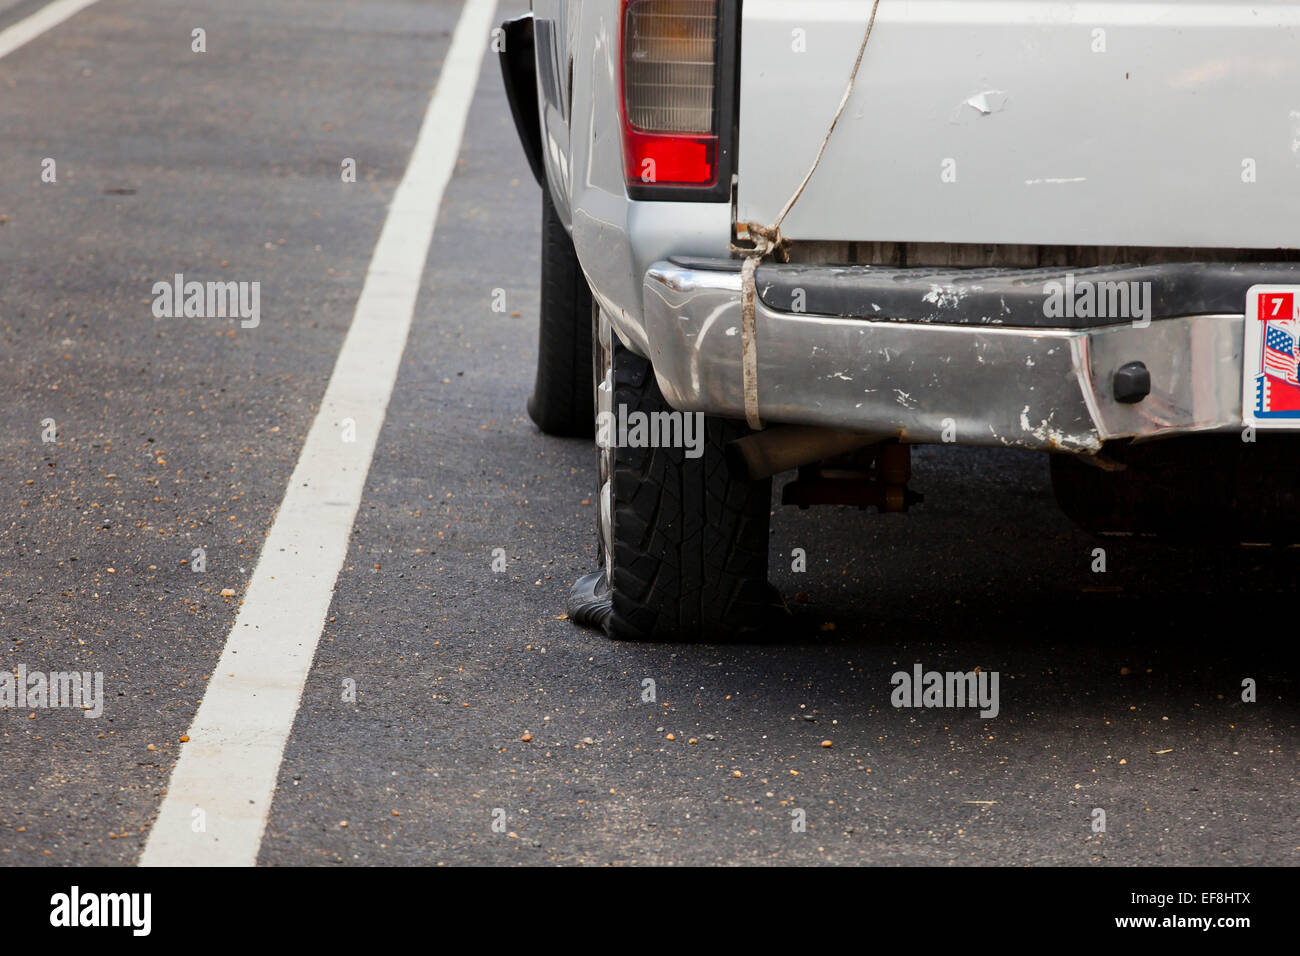 Pickup truck with flat rear tire - USA - Stock Image